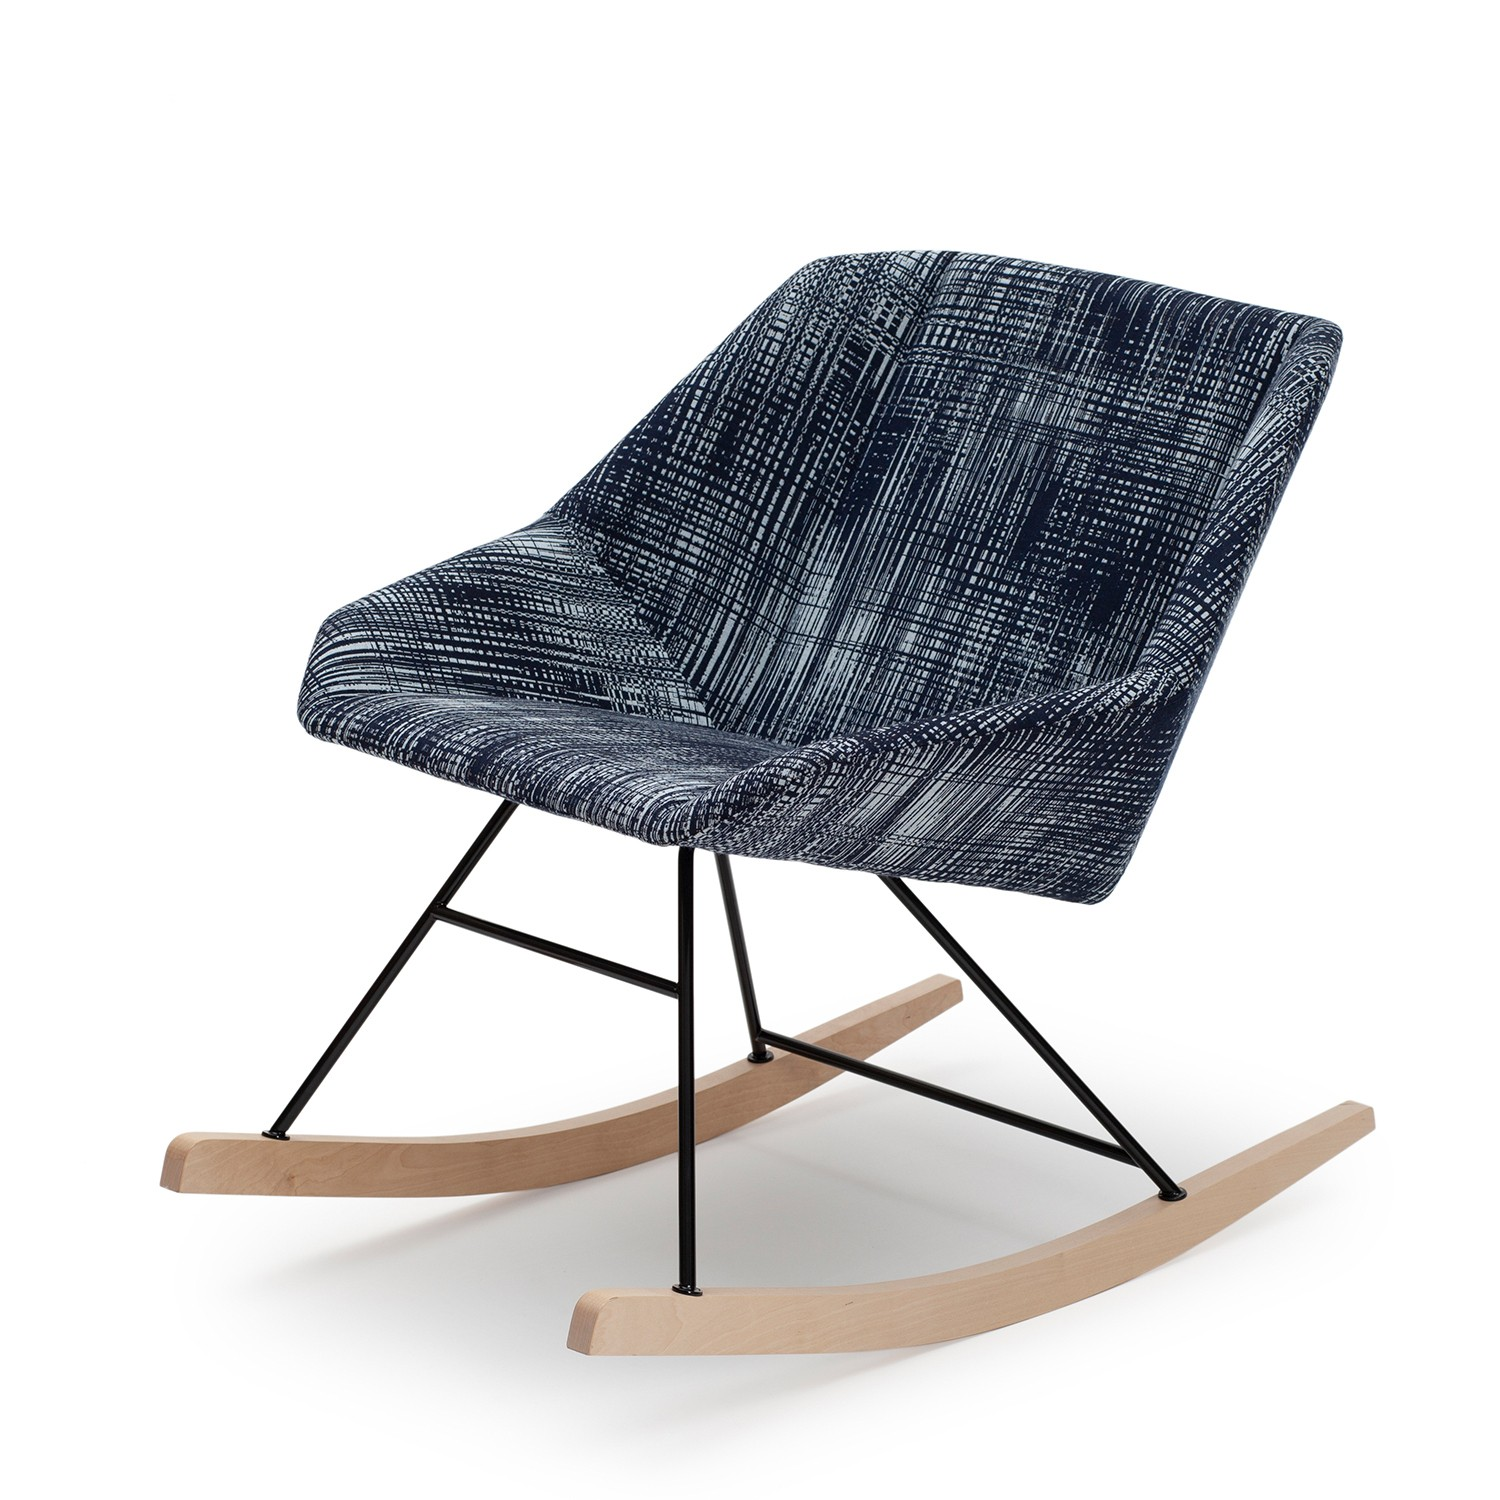 Click to enlarge image 1000_1_Rosebud-1TRC_rocking chair-design-Ilkka-Suppanen.jpg